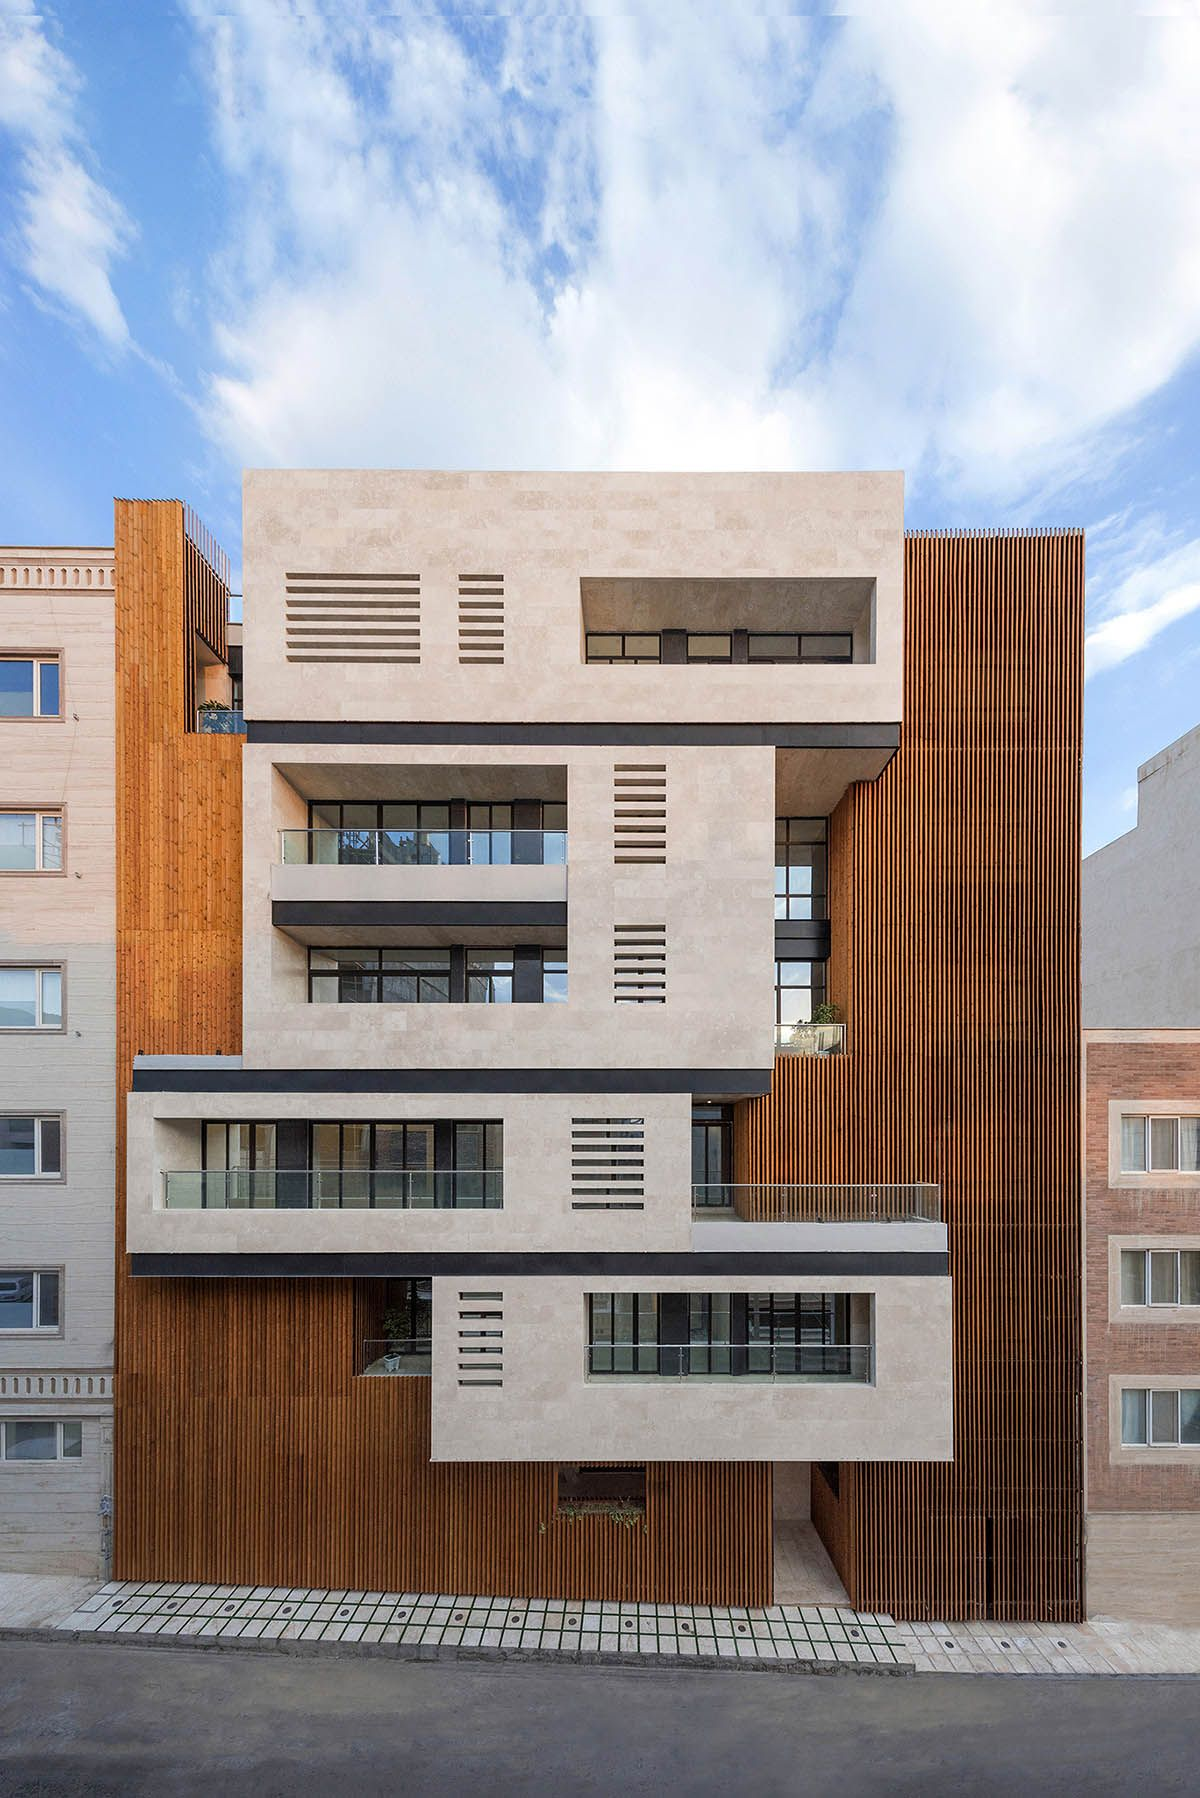 Limitations and Creativity in Designing Building Facades in Iran